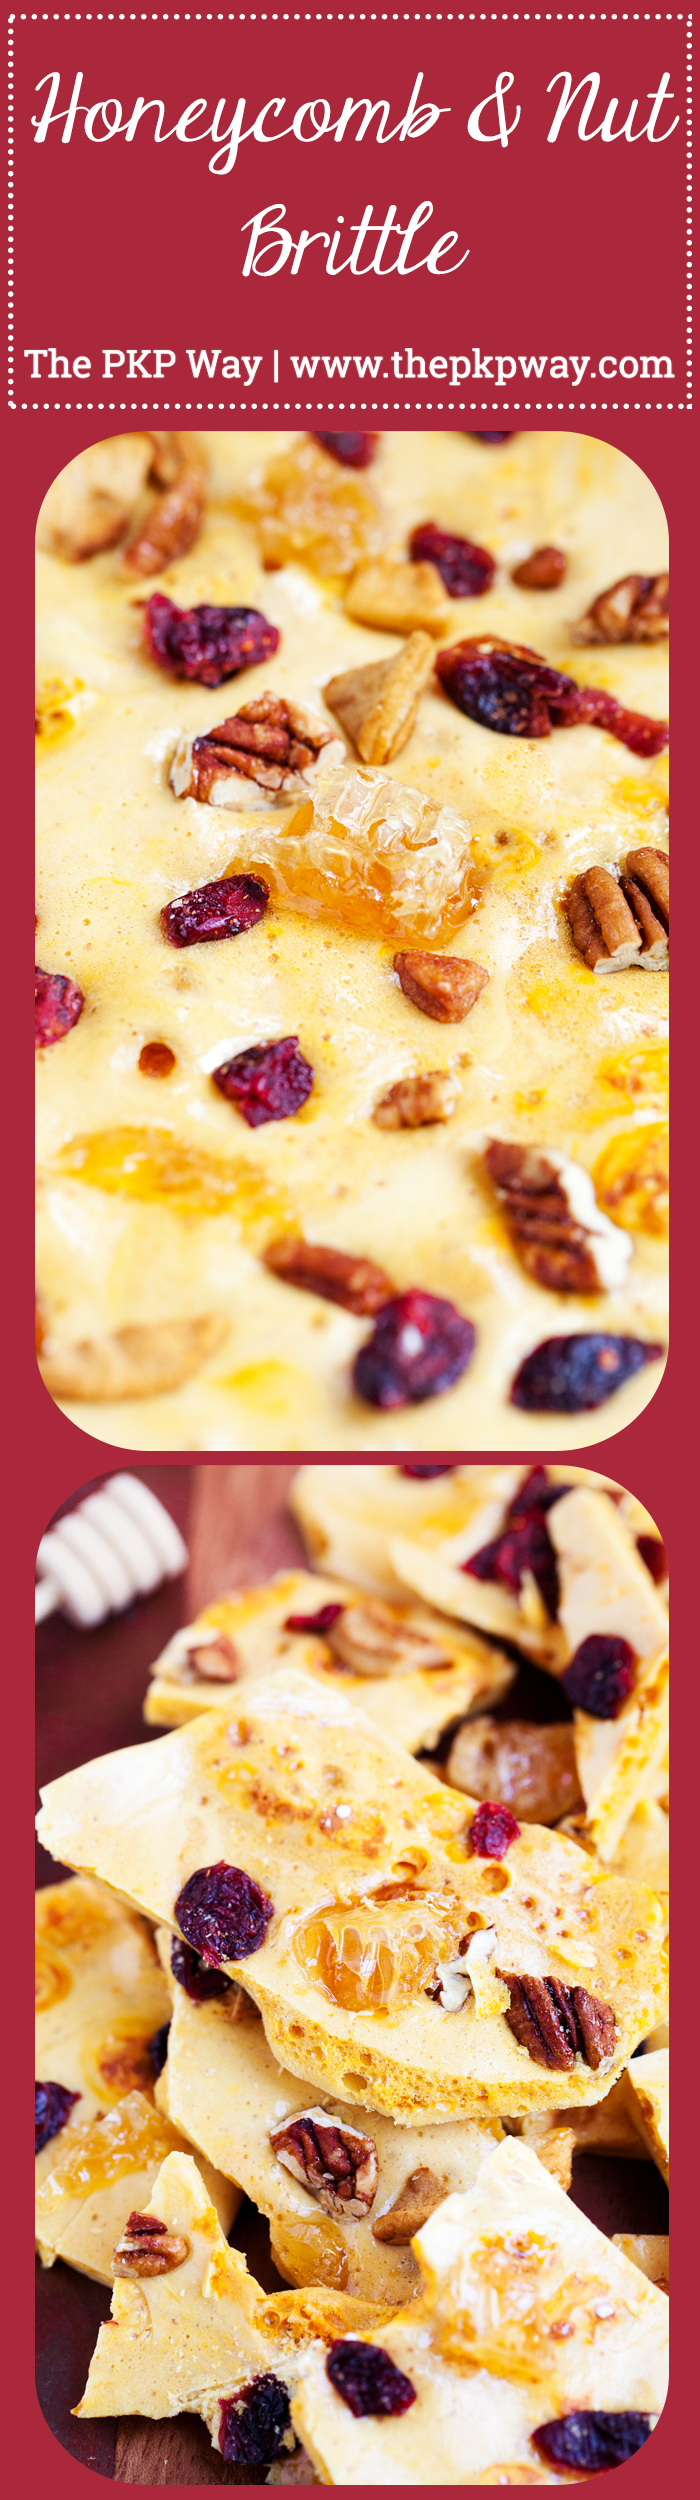 Images Of Candy Loving Simple honeycomb and nut brittle | the pkp way